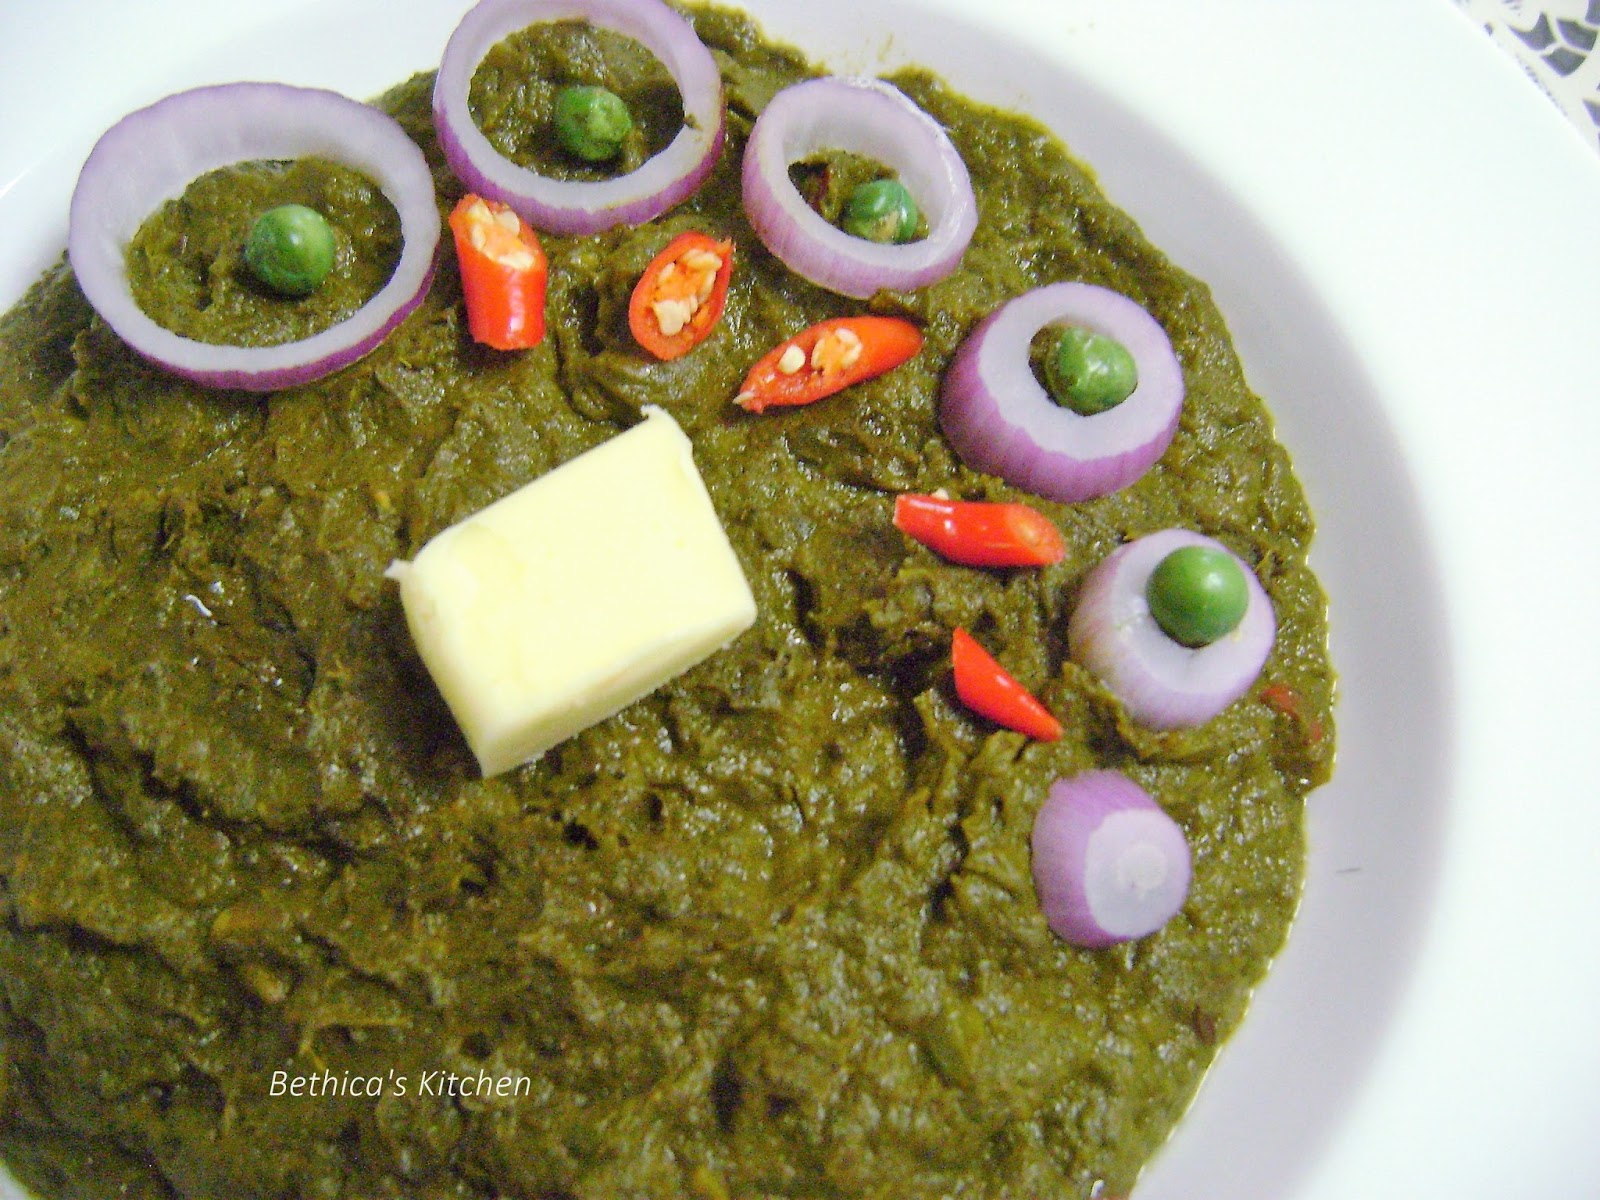 Bethicas kitchen flavours delicious sarson ka saag mustard greens boil the mustard leaves coriander mint leaves in 1 cup water or pressure cook for 2 3 whistles set aside to cool blend well to a smooth paste forumfinder Gallery